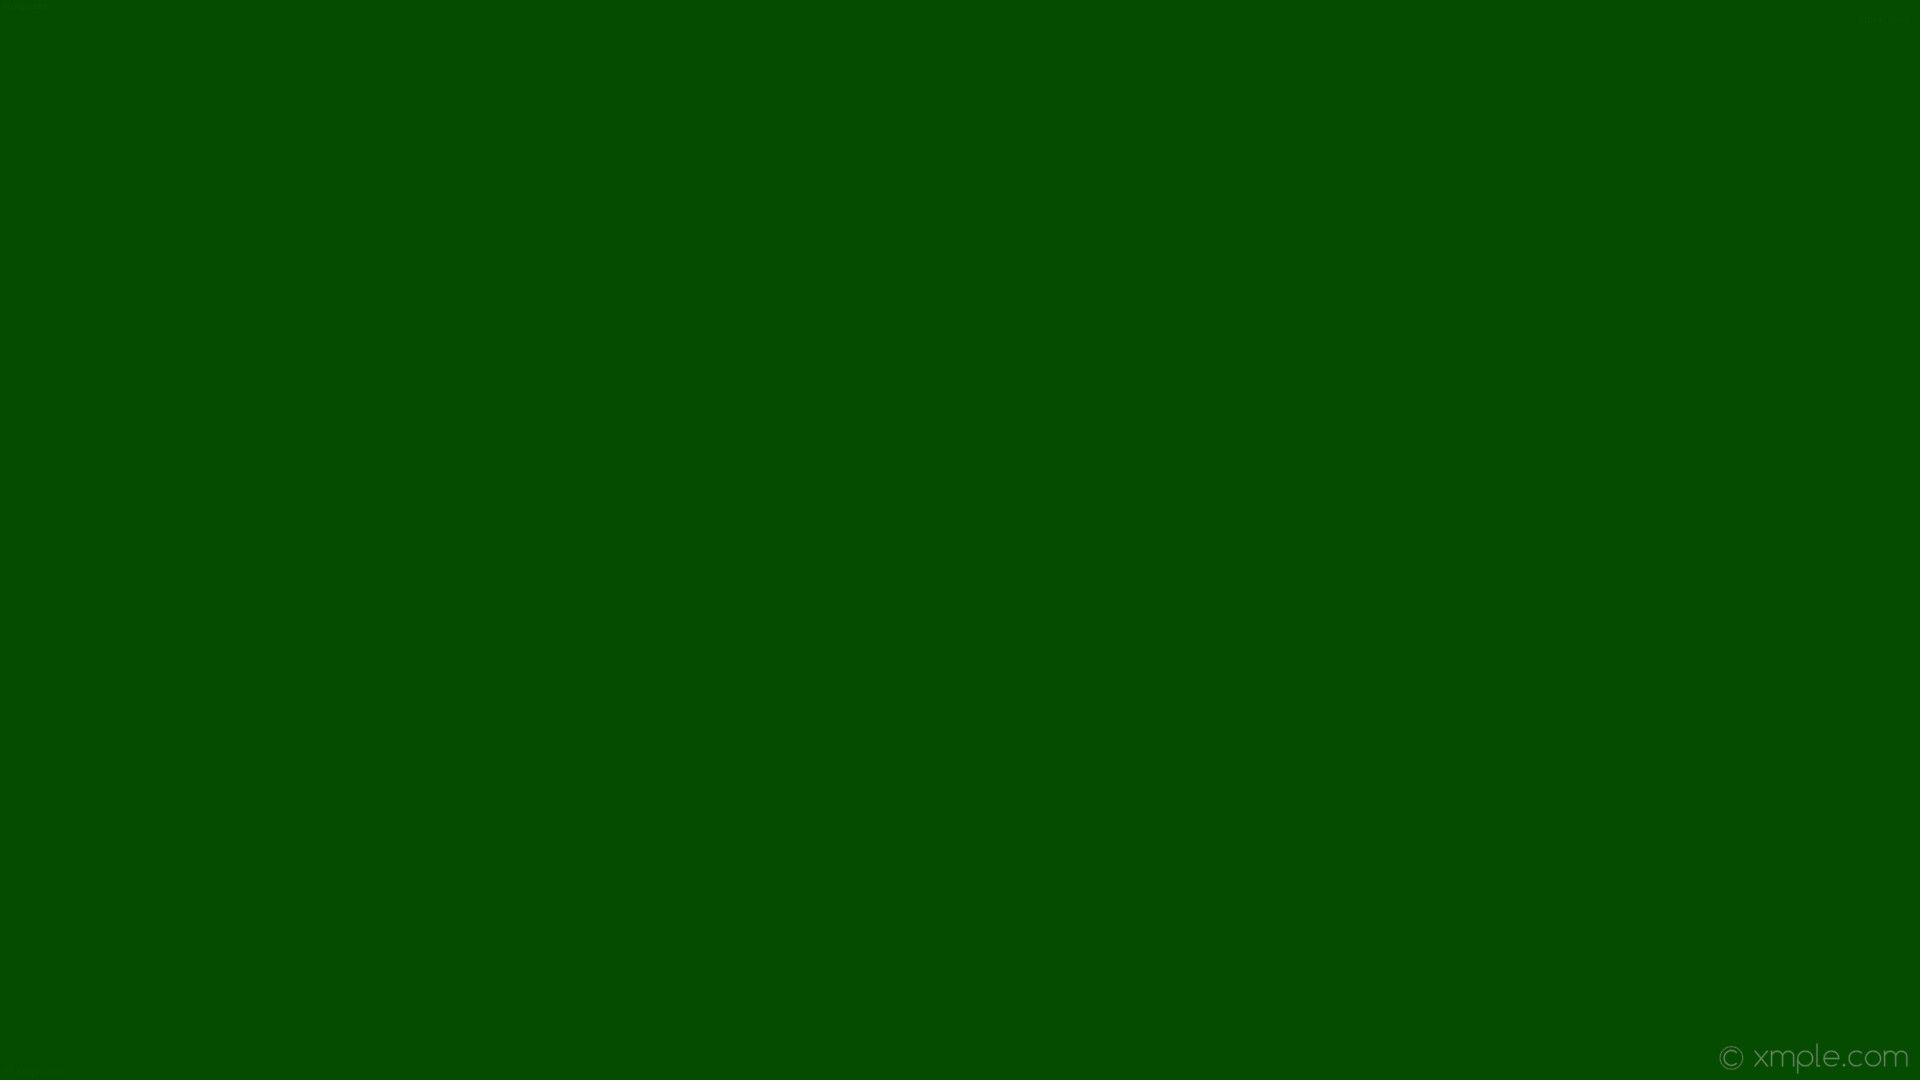 Solid Green Wallpaper 67 Images